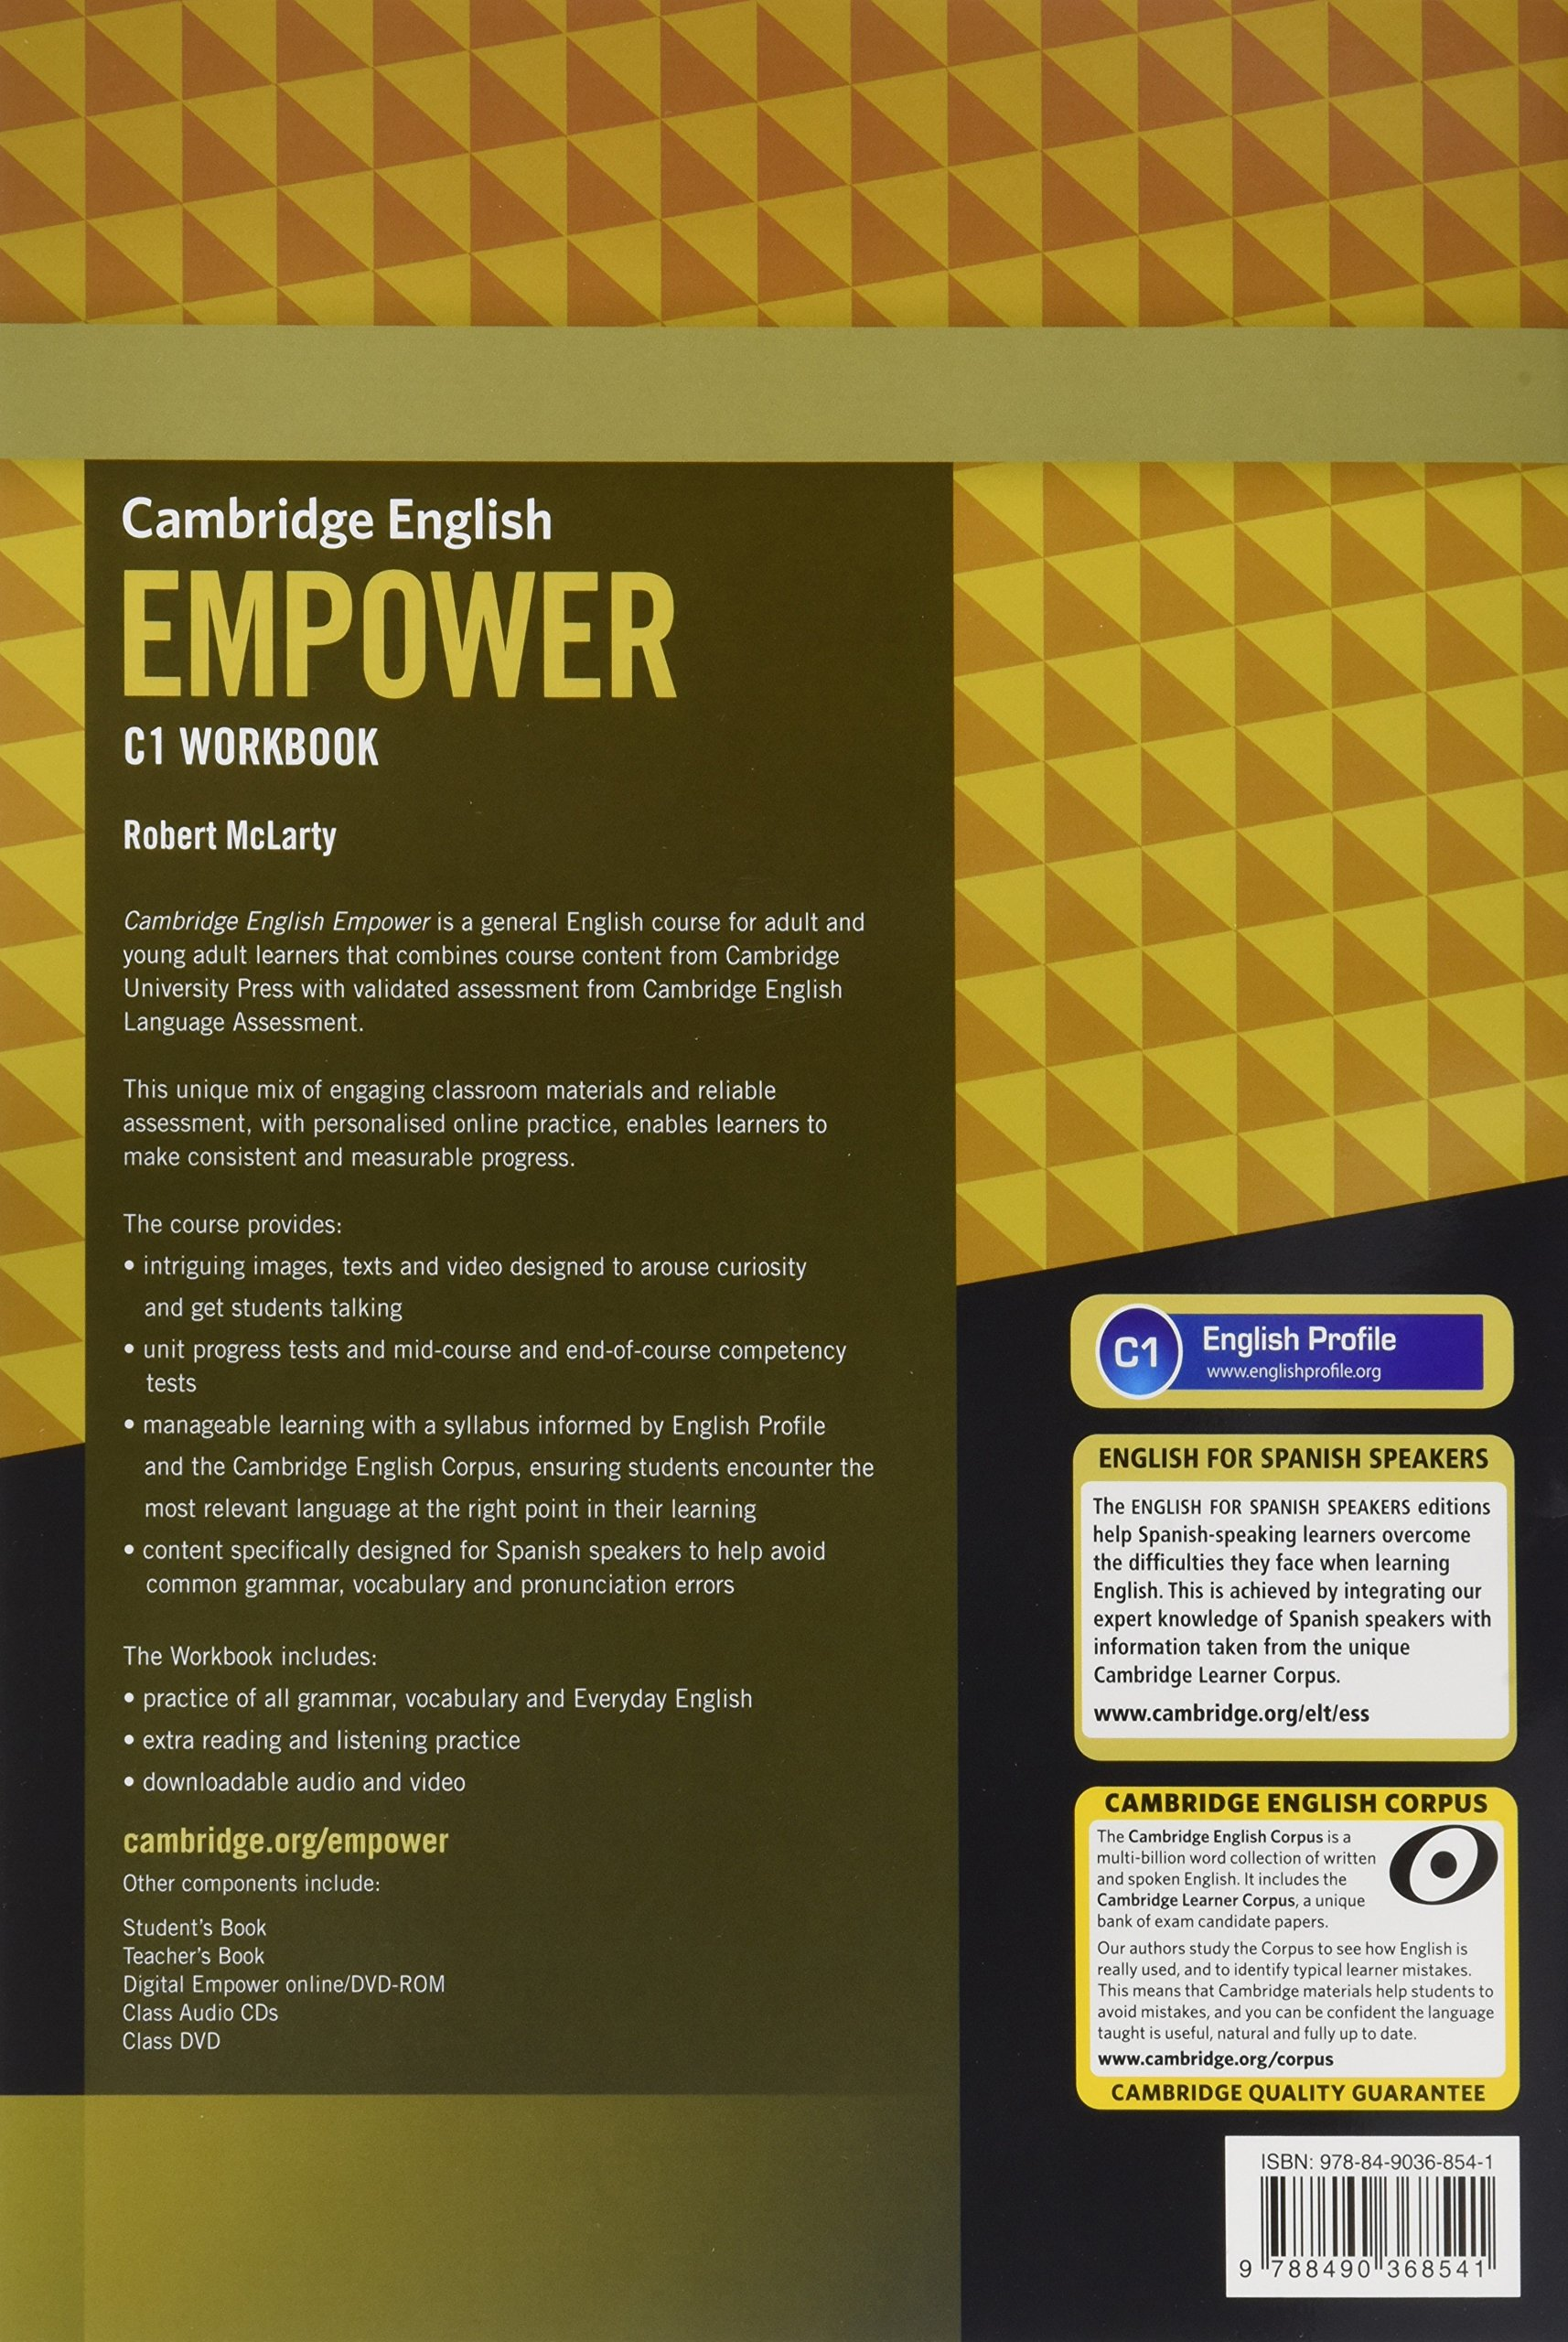 Cambridge English Empower for Spanish Speakers C1 Learning Pack Students Book with Online Assessment and Practice and Workbook: Amazon.es: Doff, Adrian, Thaine, Craig, Puchta, Herbert, Stranks, Jeff, Lewis-Jones, Peter: Libros en idiomas